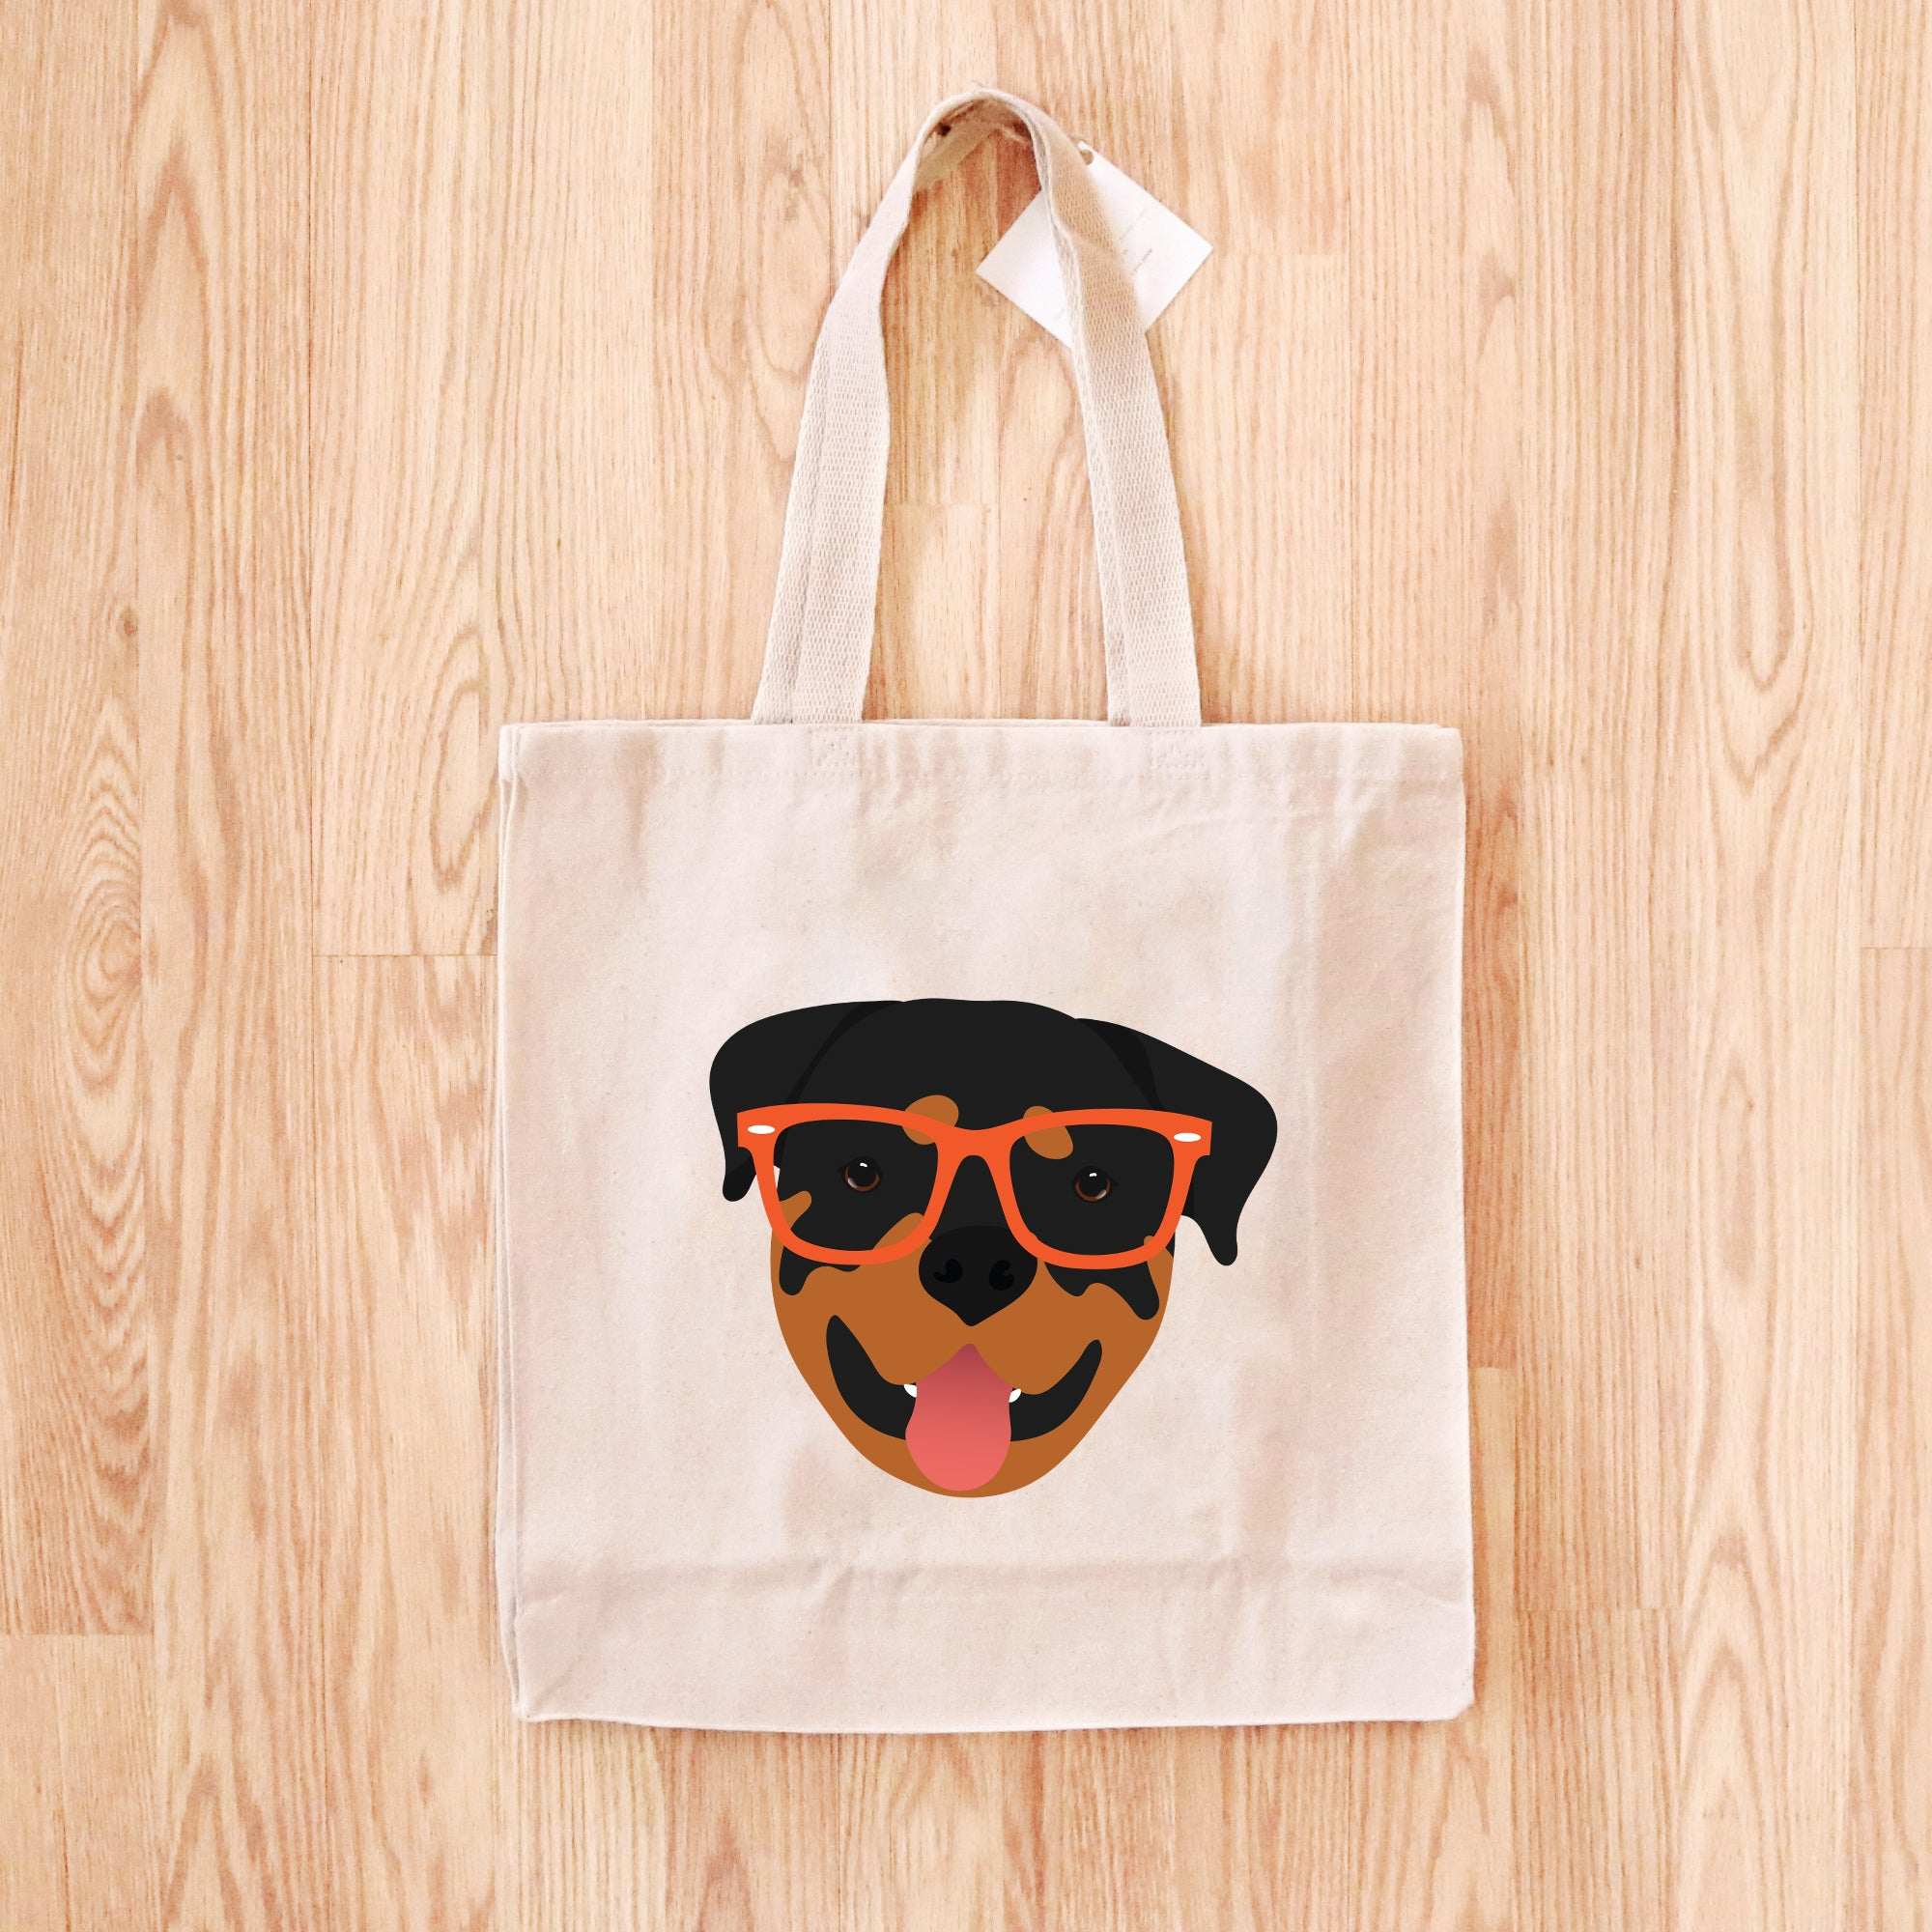 Rottweiler with Glasses Tote Bag